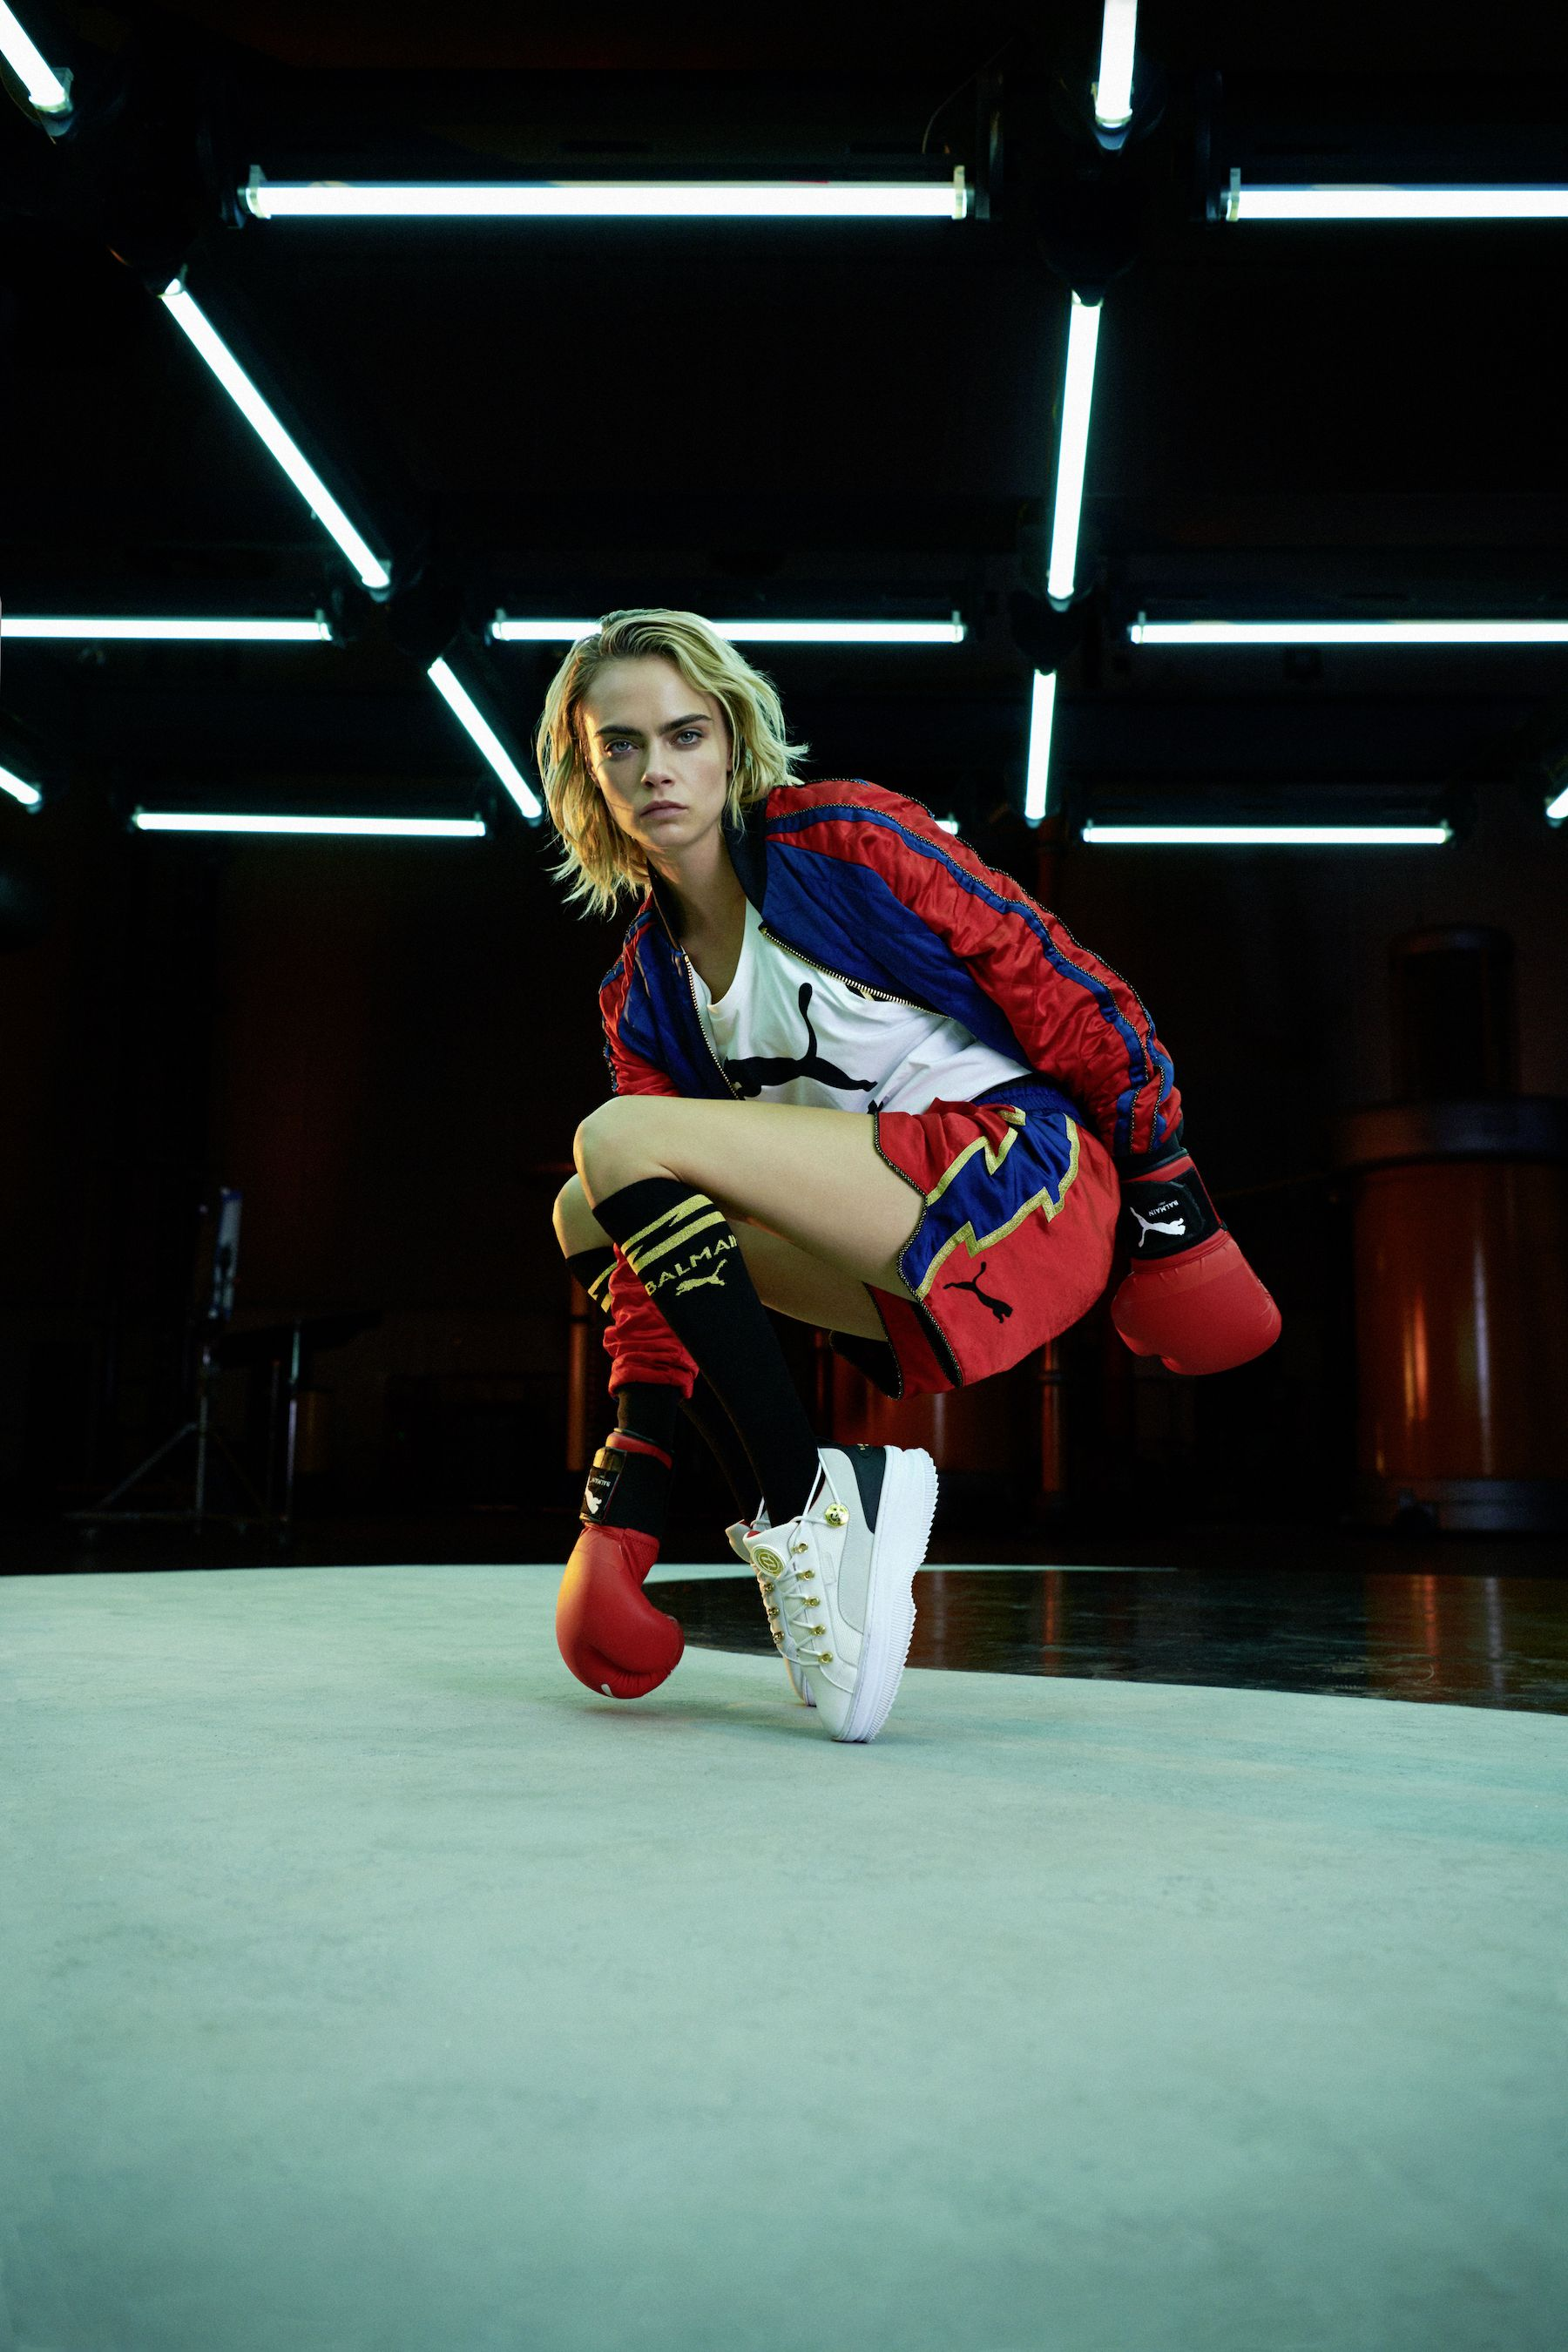 Cara Delevingne Hits the Boxing Ring for the Puma x Balmain Collaboration—See All the Looks